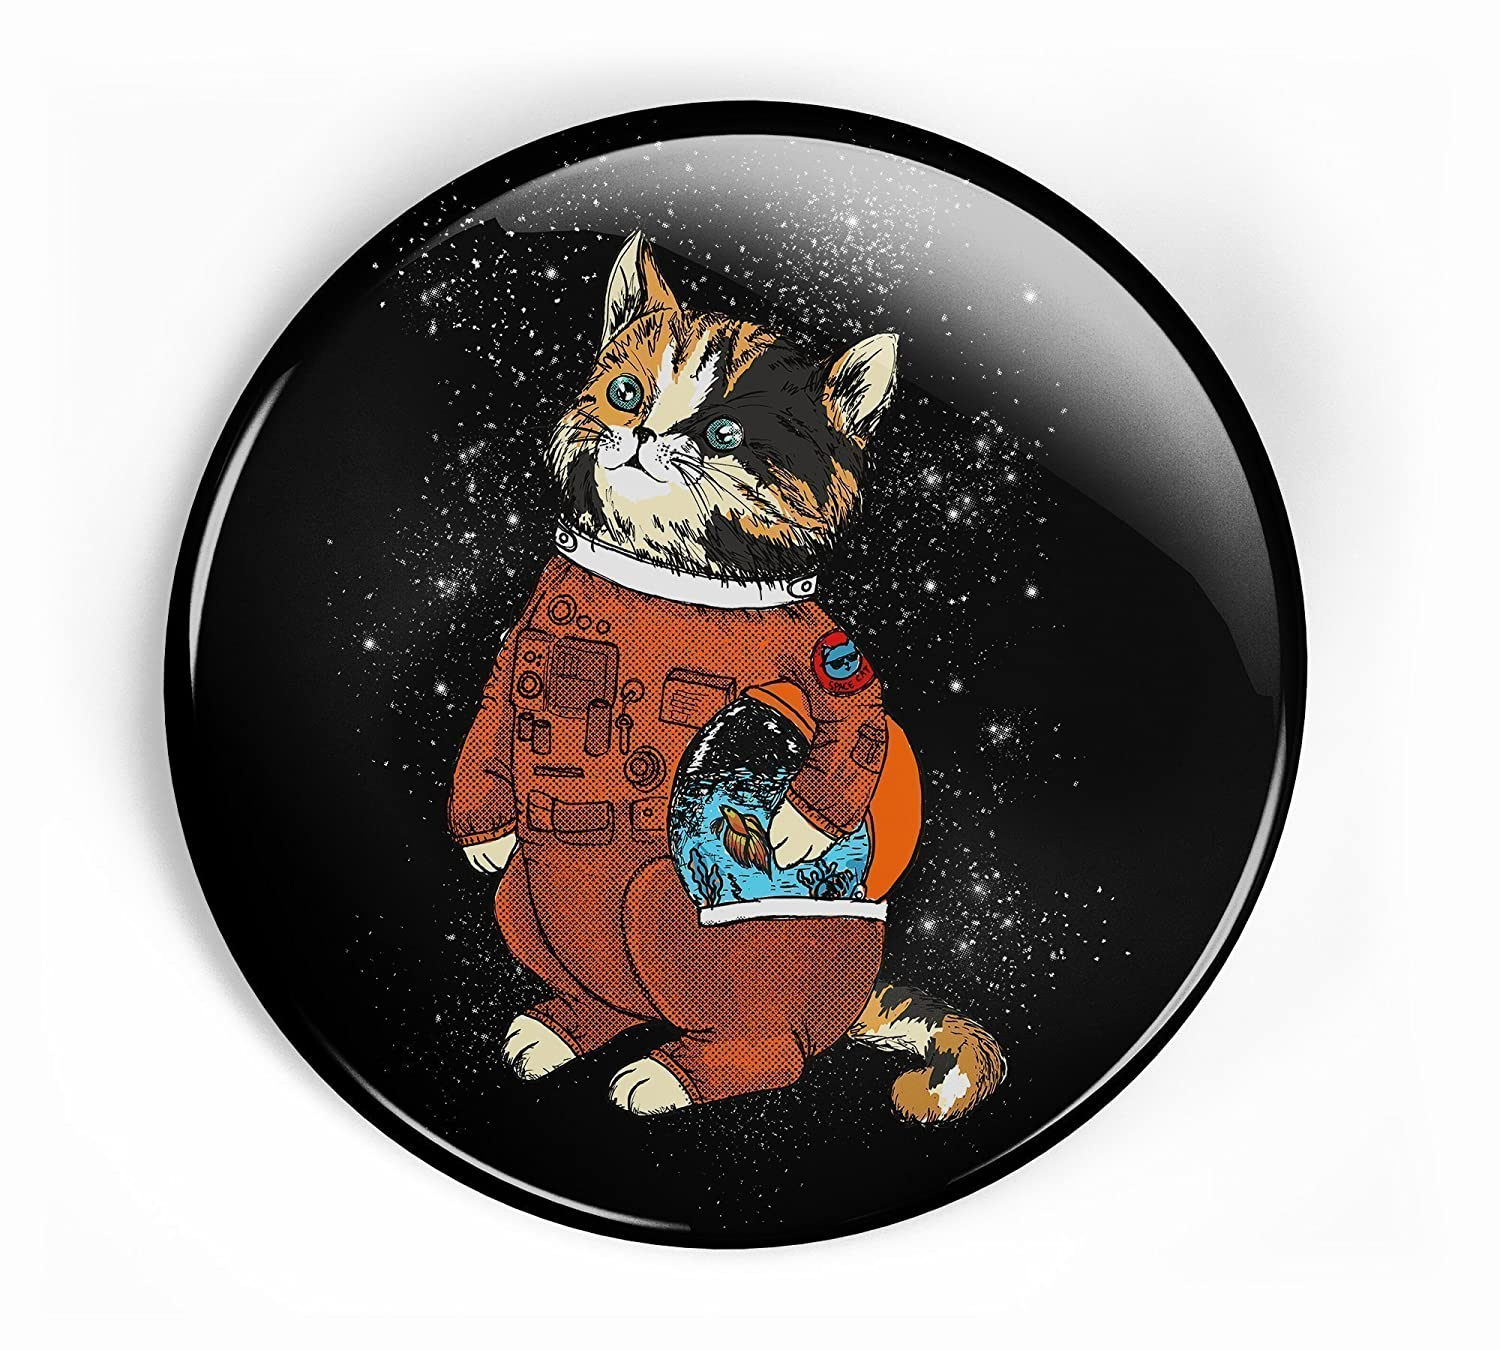 Astronaut cat pin button with space suit and helmet looking across the galaxy